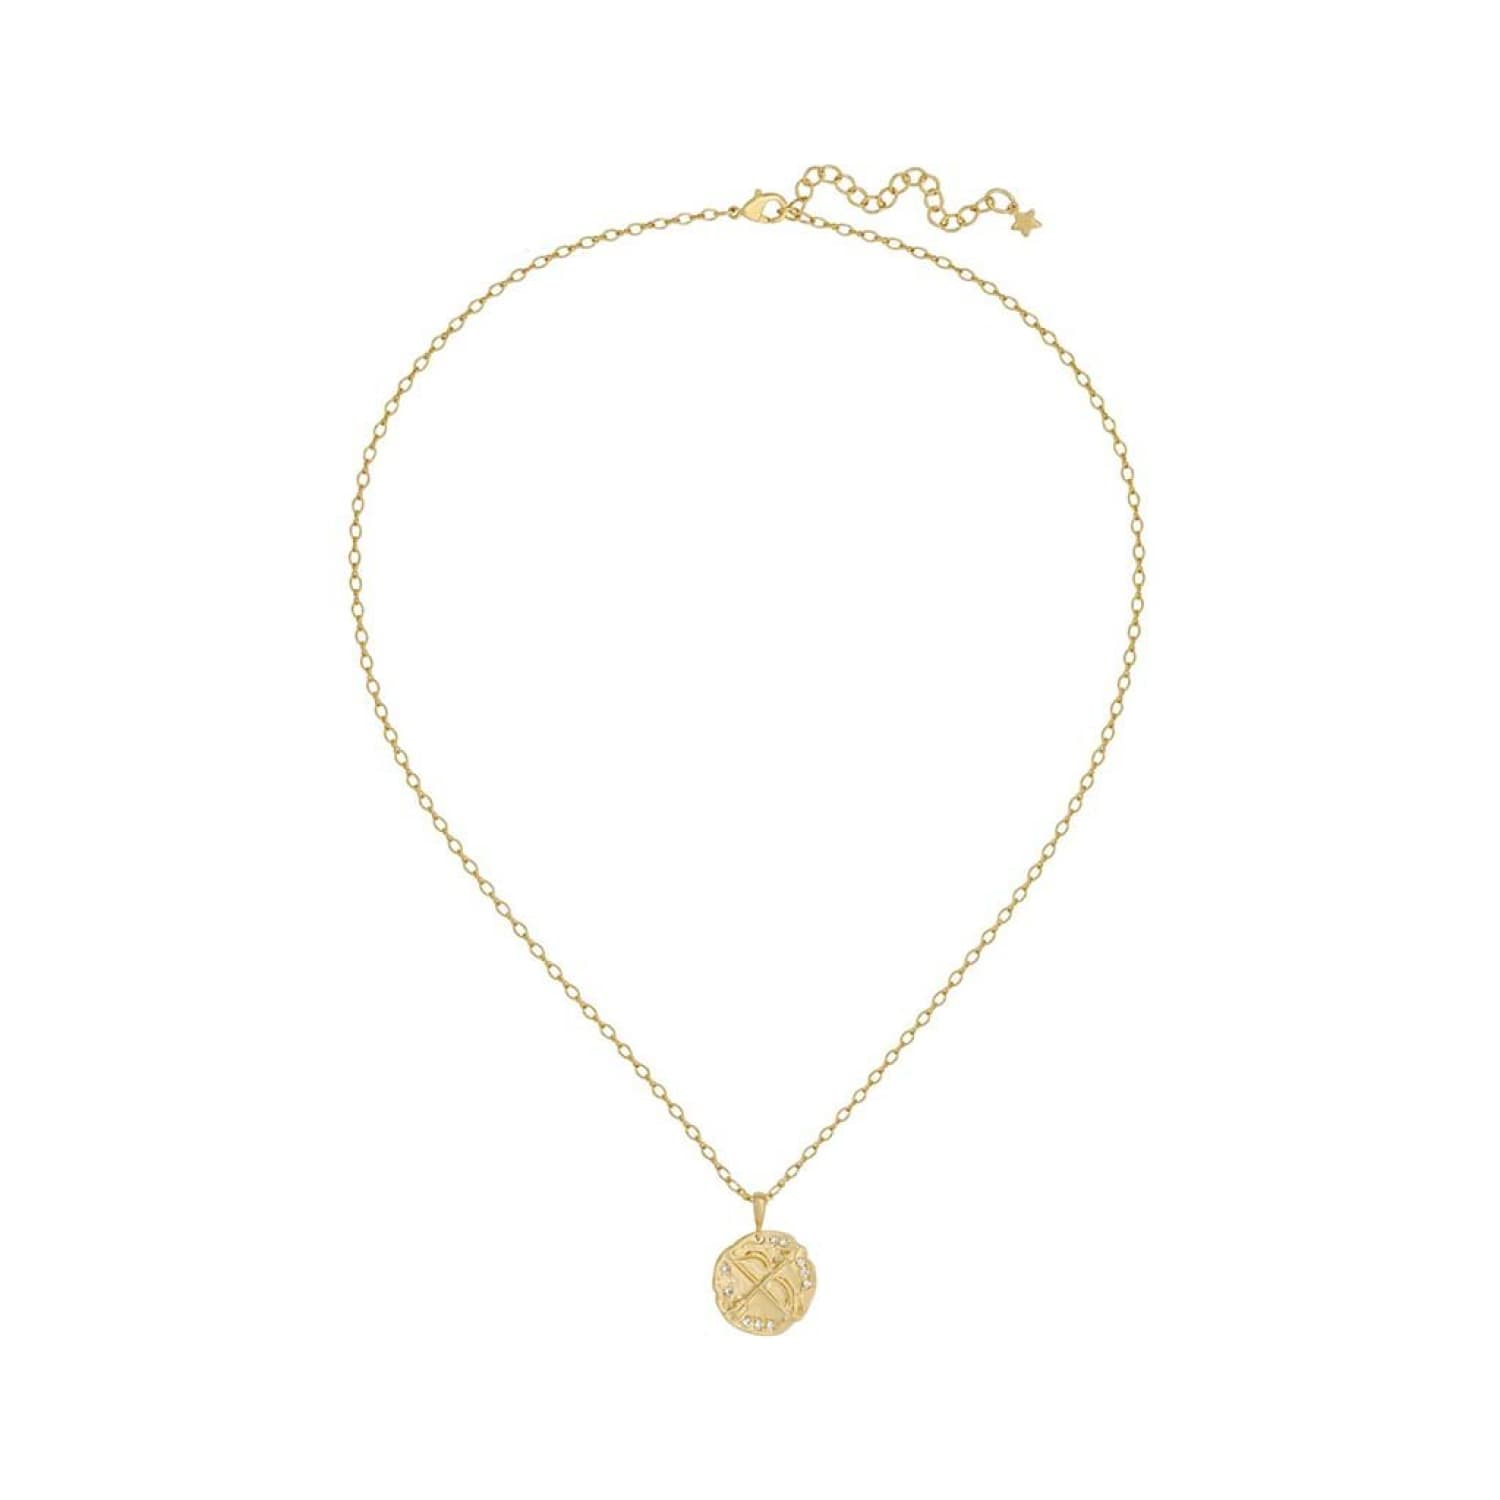 Olympia Necklace Coin, Coin Charm, Cubic Zirconia, Gold